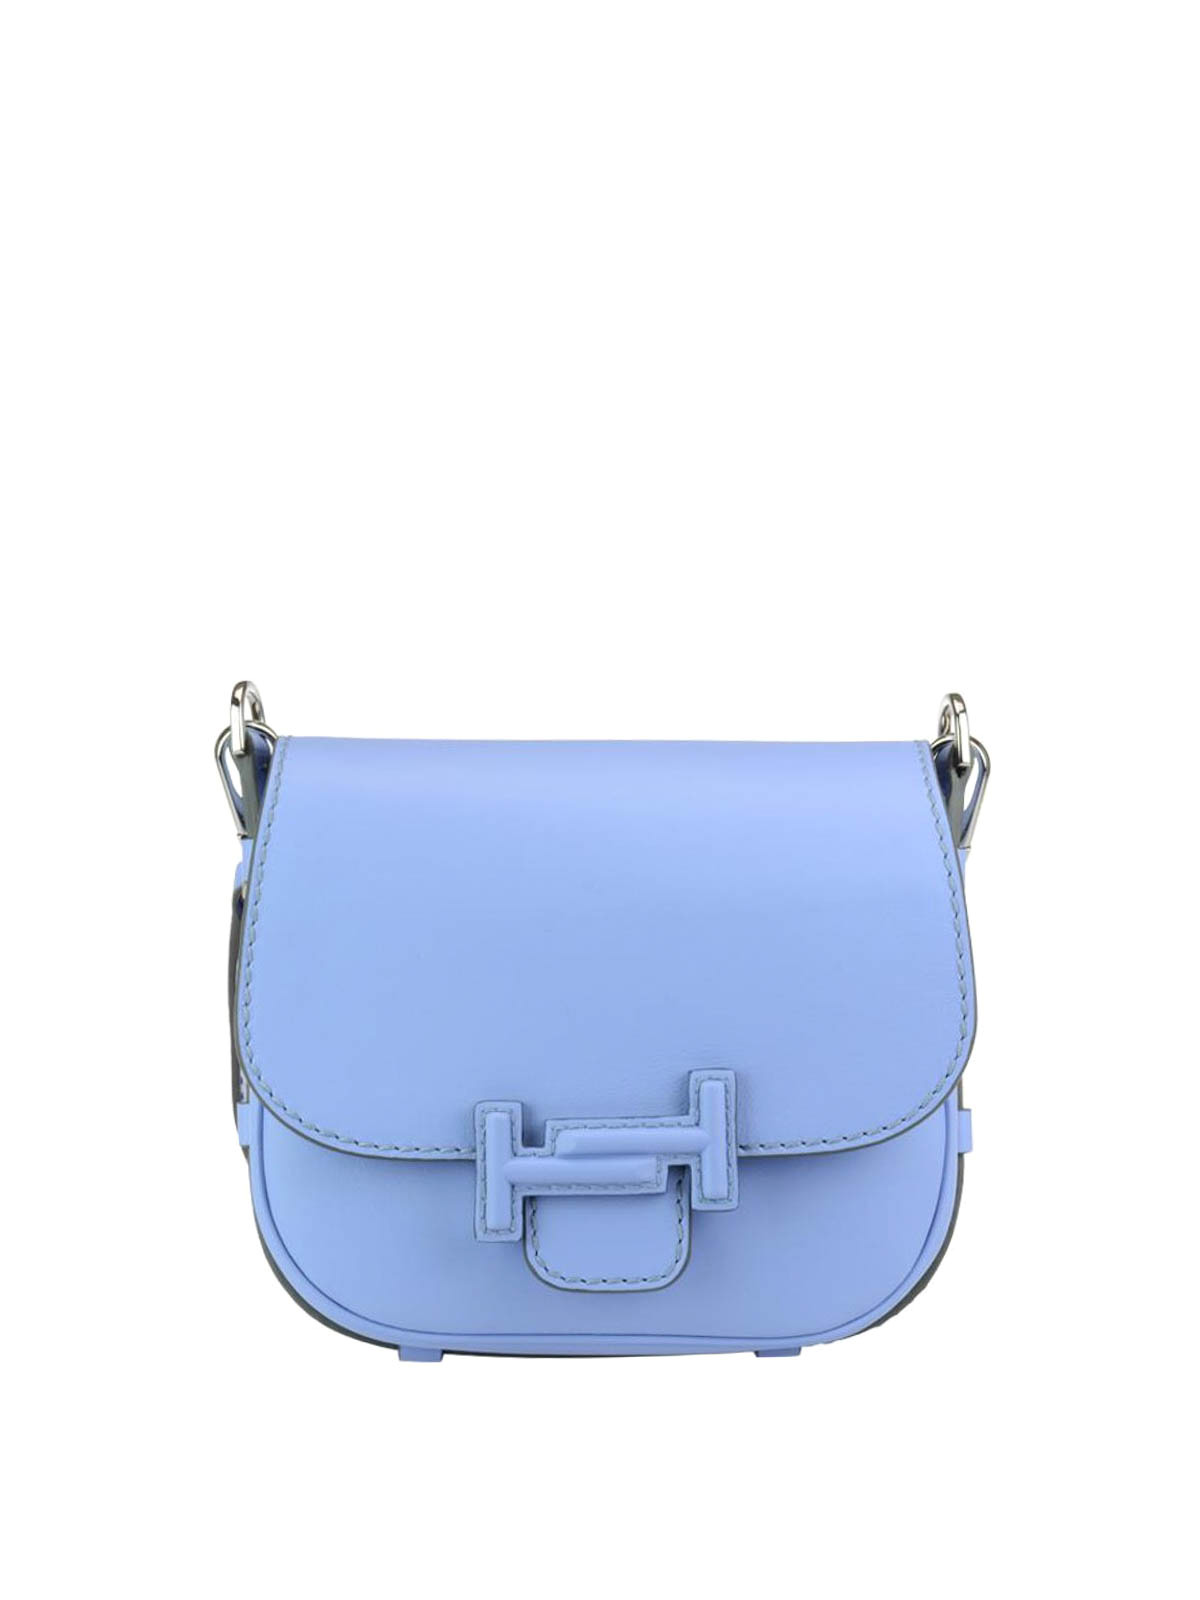 double t light blue saddle bag by tod 39 s shoulder bags. Black Bedroom Furniture Sets. Home Design Ideas